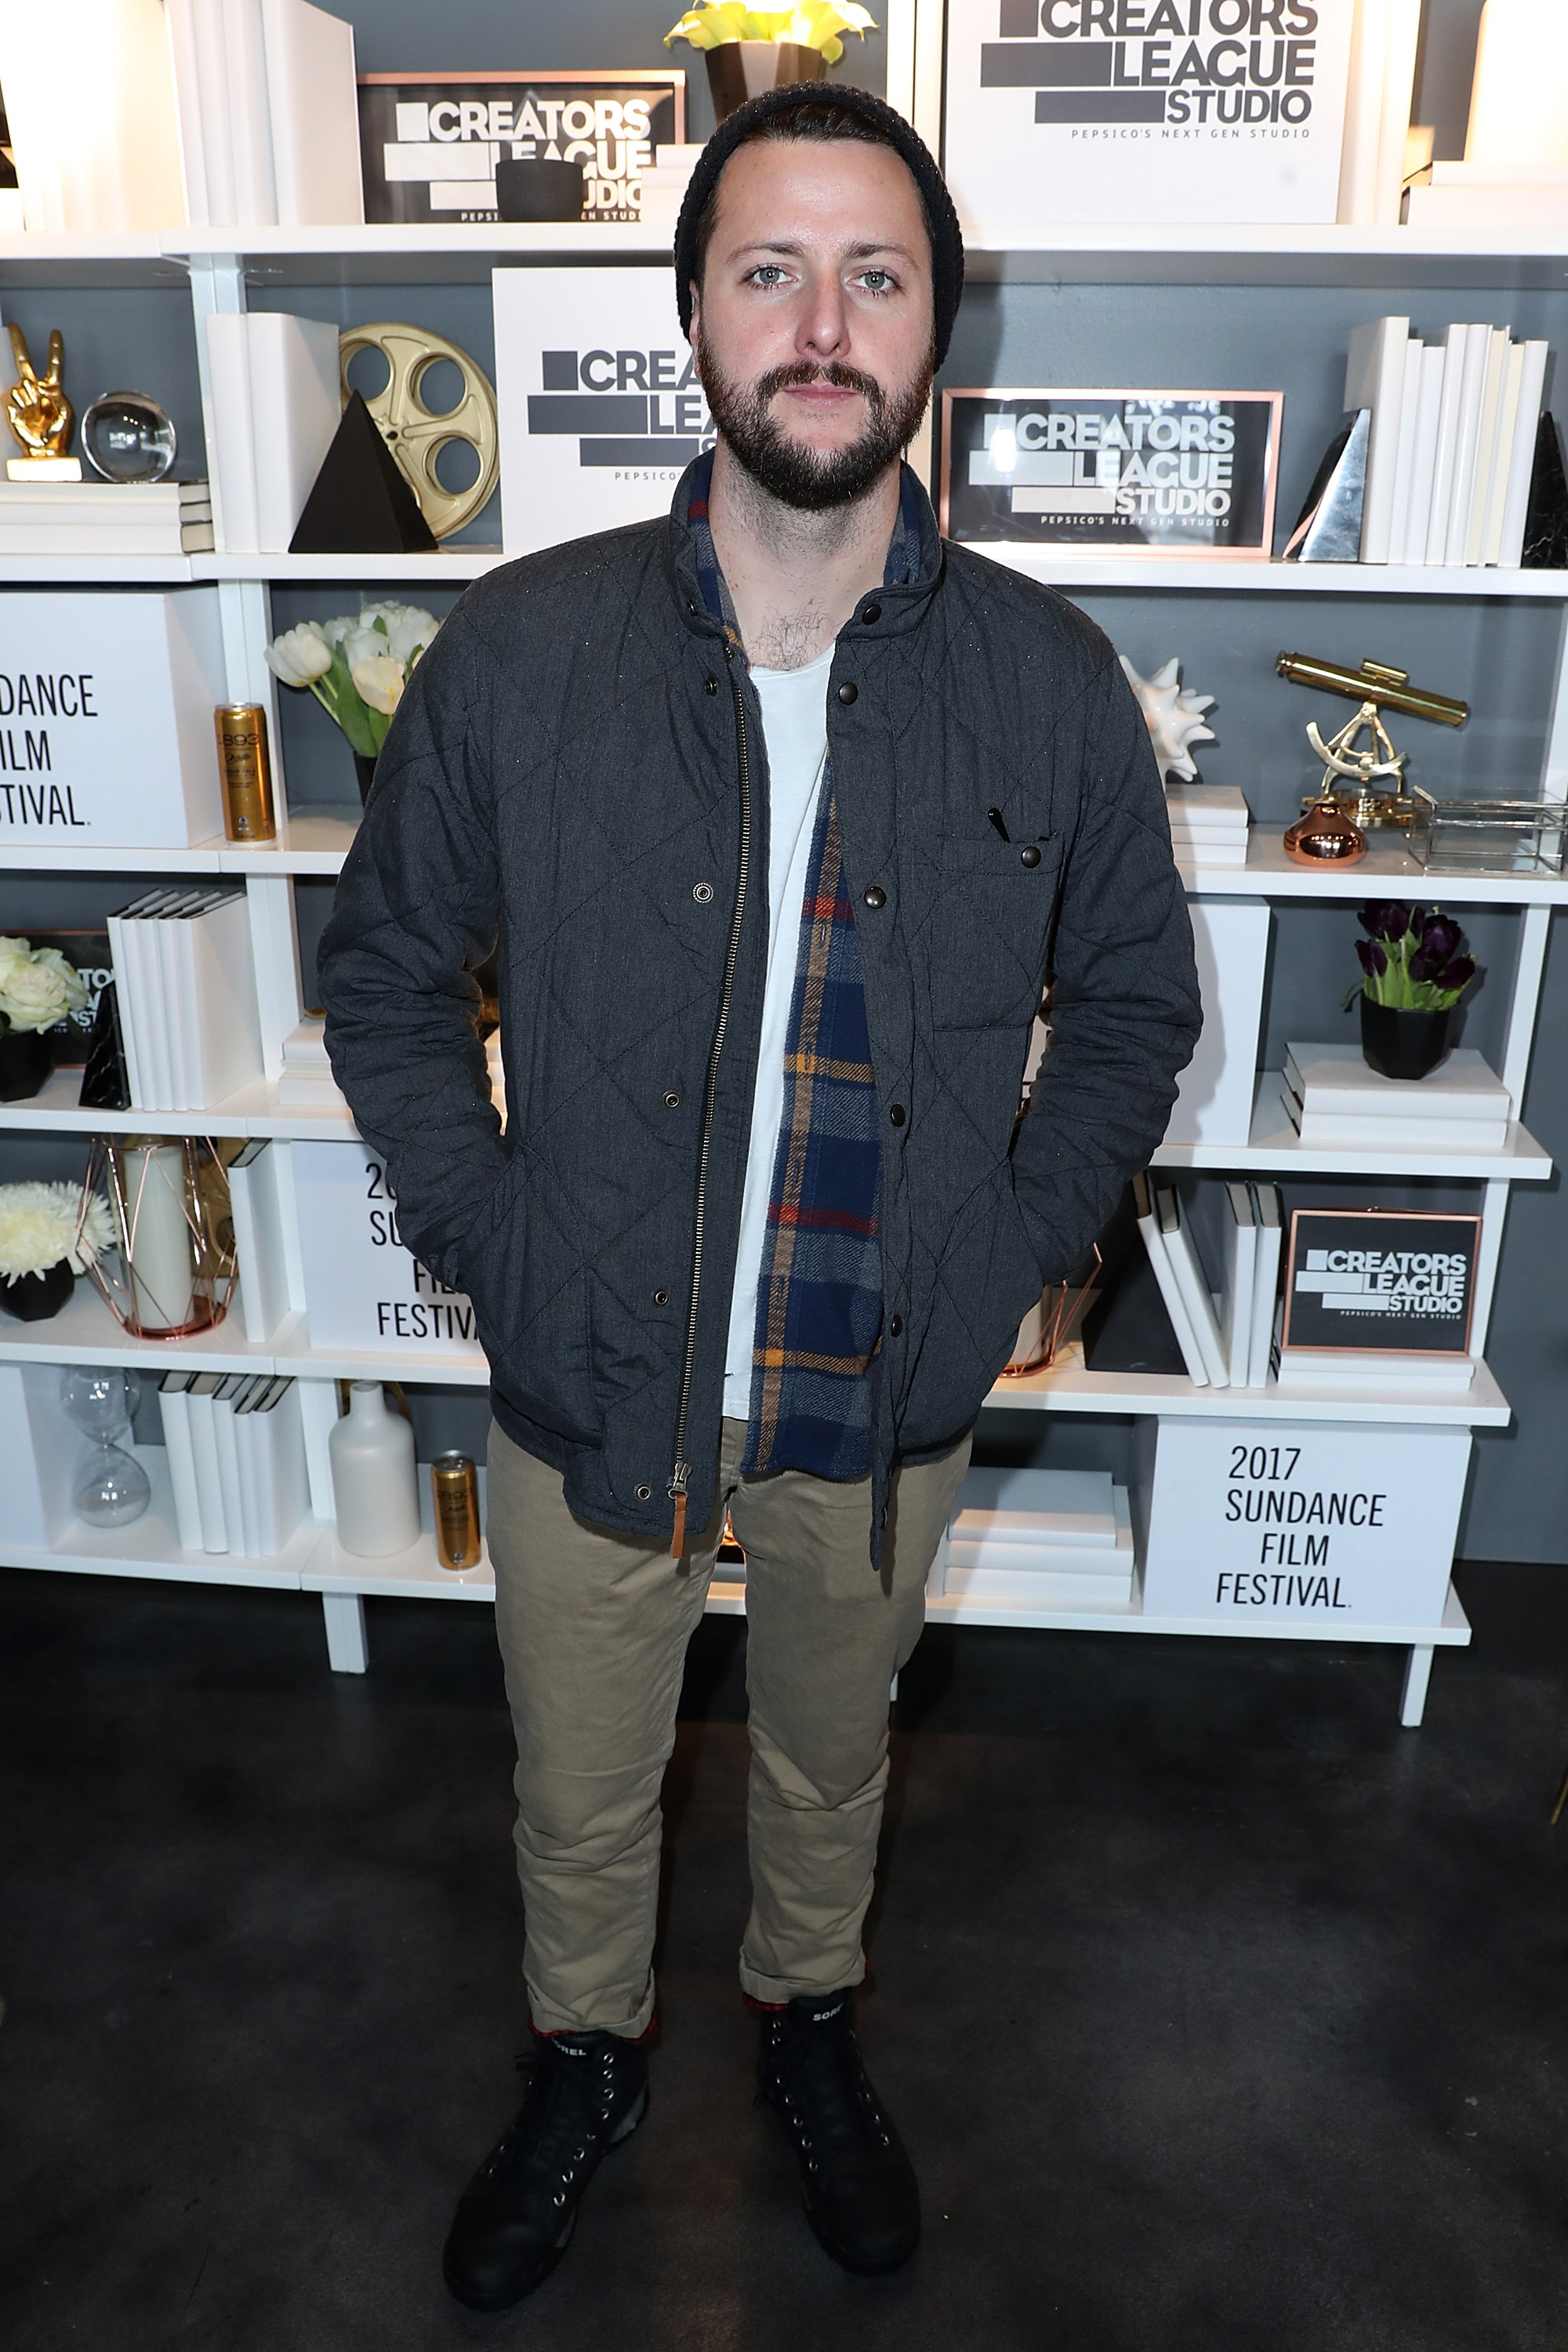 PARK CITY, UT – JANUARY 24  Kevin Costello attends the Creators League  Studio At 2017 Sundance Film Festival – Day 6 on January 24, 2017 in Park  City, Utah. 5f3980ab7d78